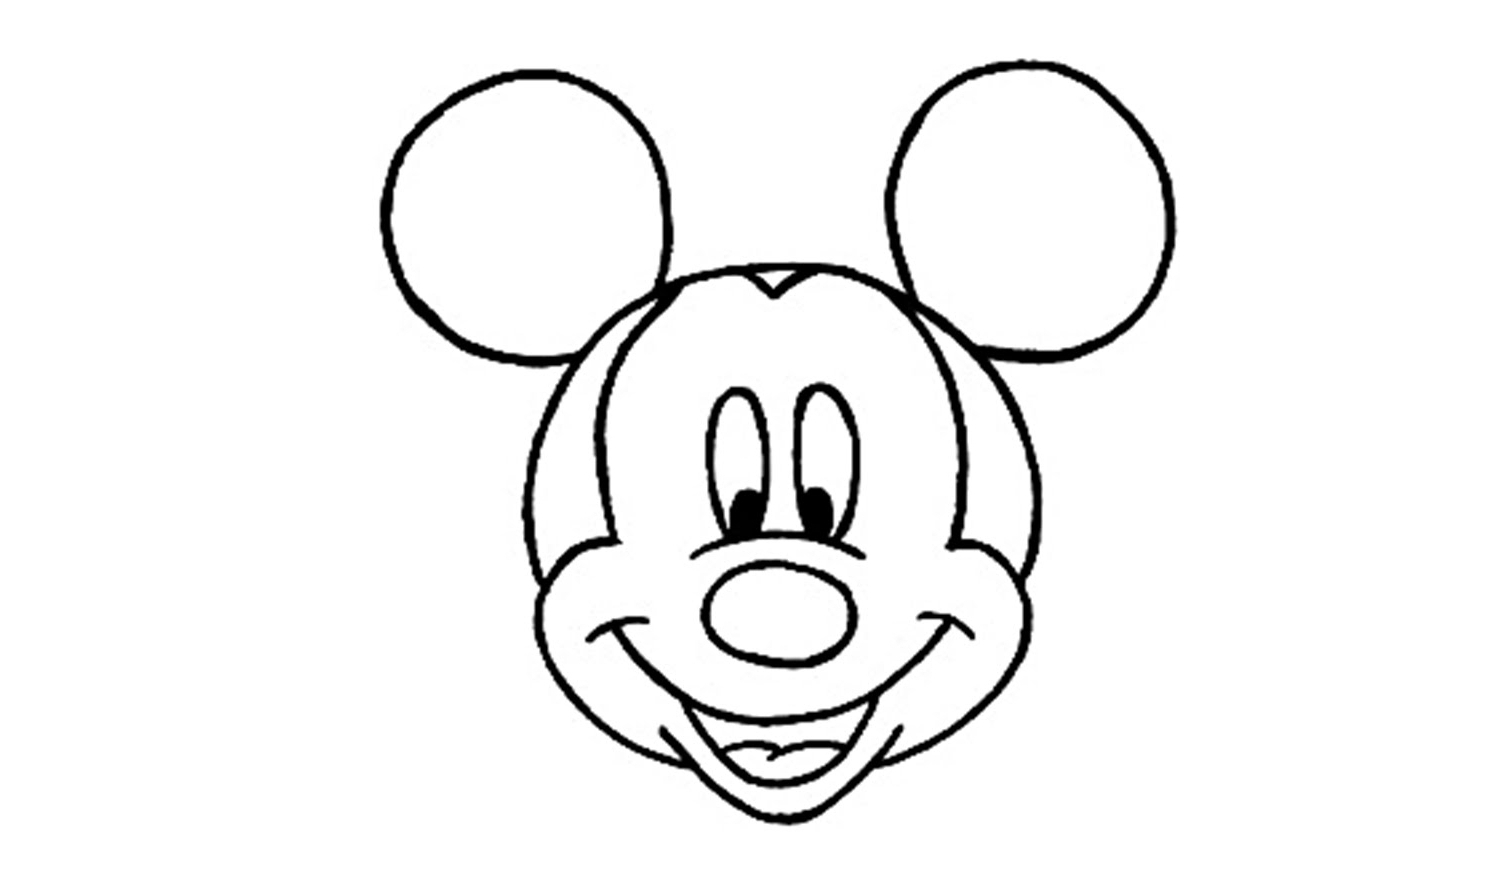 easy mickey mouse drawing mickey mouse zeichnen ausmalbilder und vorlagen mickey easy mouse drawing